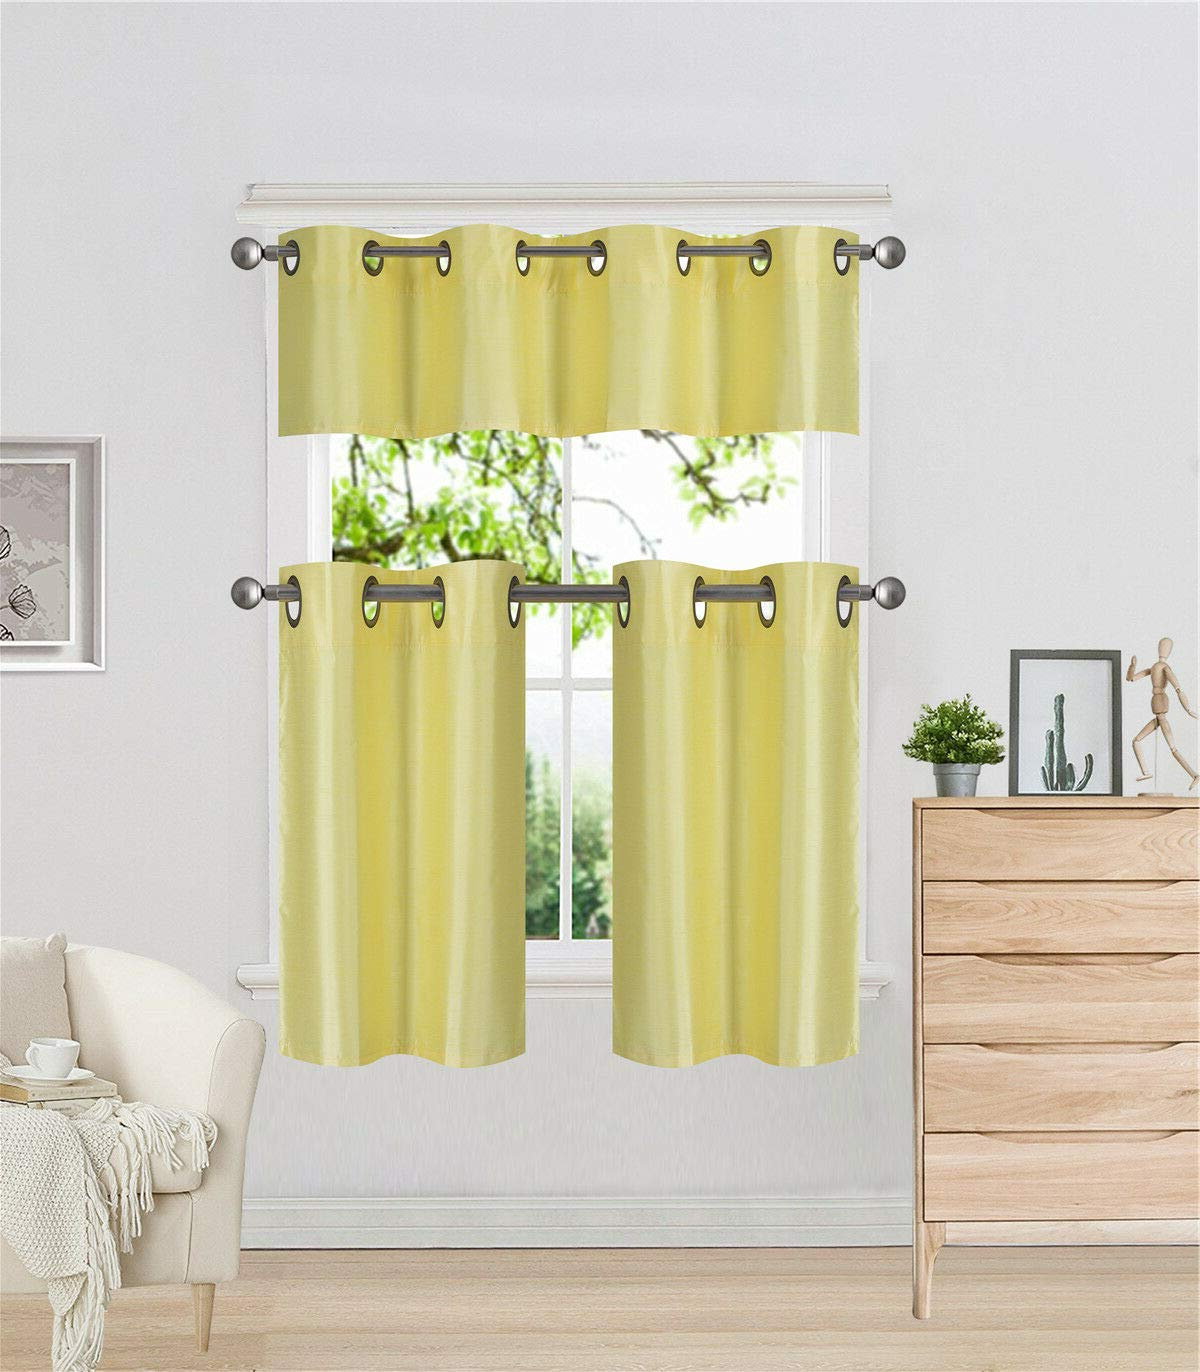 Faux Silk 3 Piece Kitchen Curtain Sets Pertaining To Fashionable Diamondhome 3 Piece Faux Silk Grommet Lined Thermal Blackout Kitchen Window Curtain Set 2 Tiers & 1 Valance, K7 (yellow) (View 15 of 20)